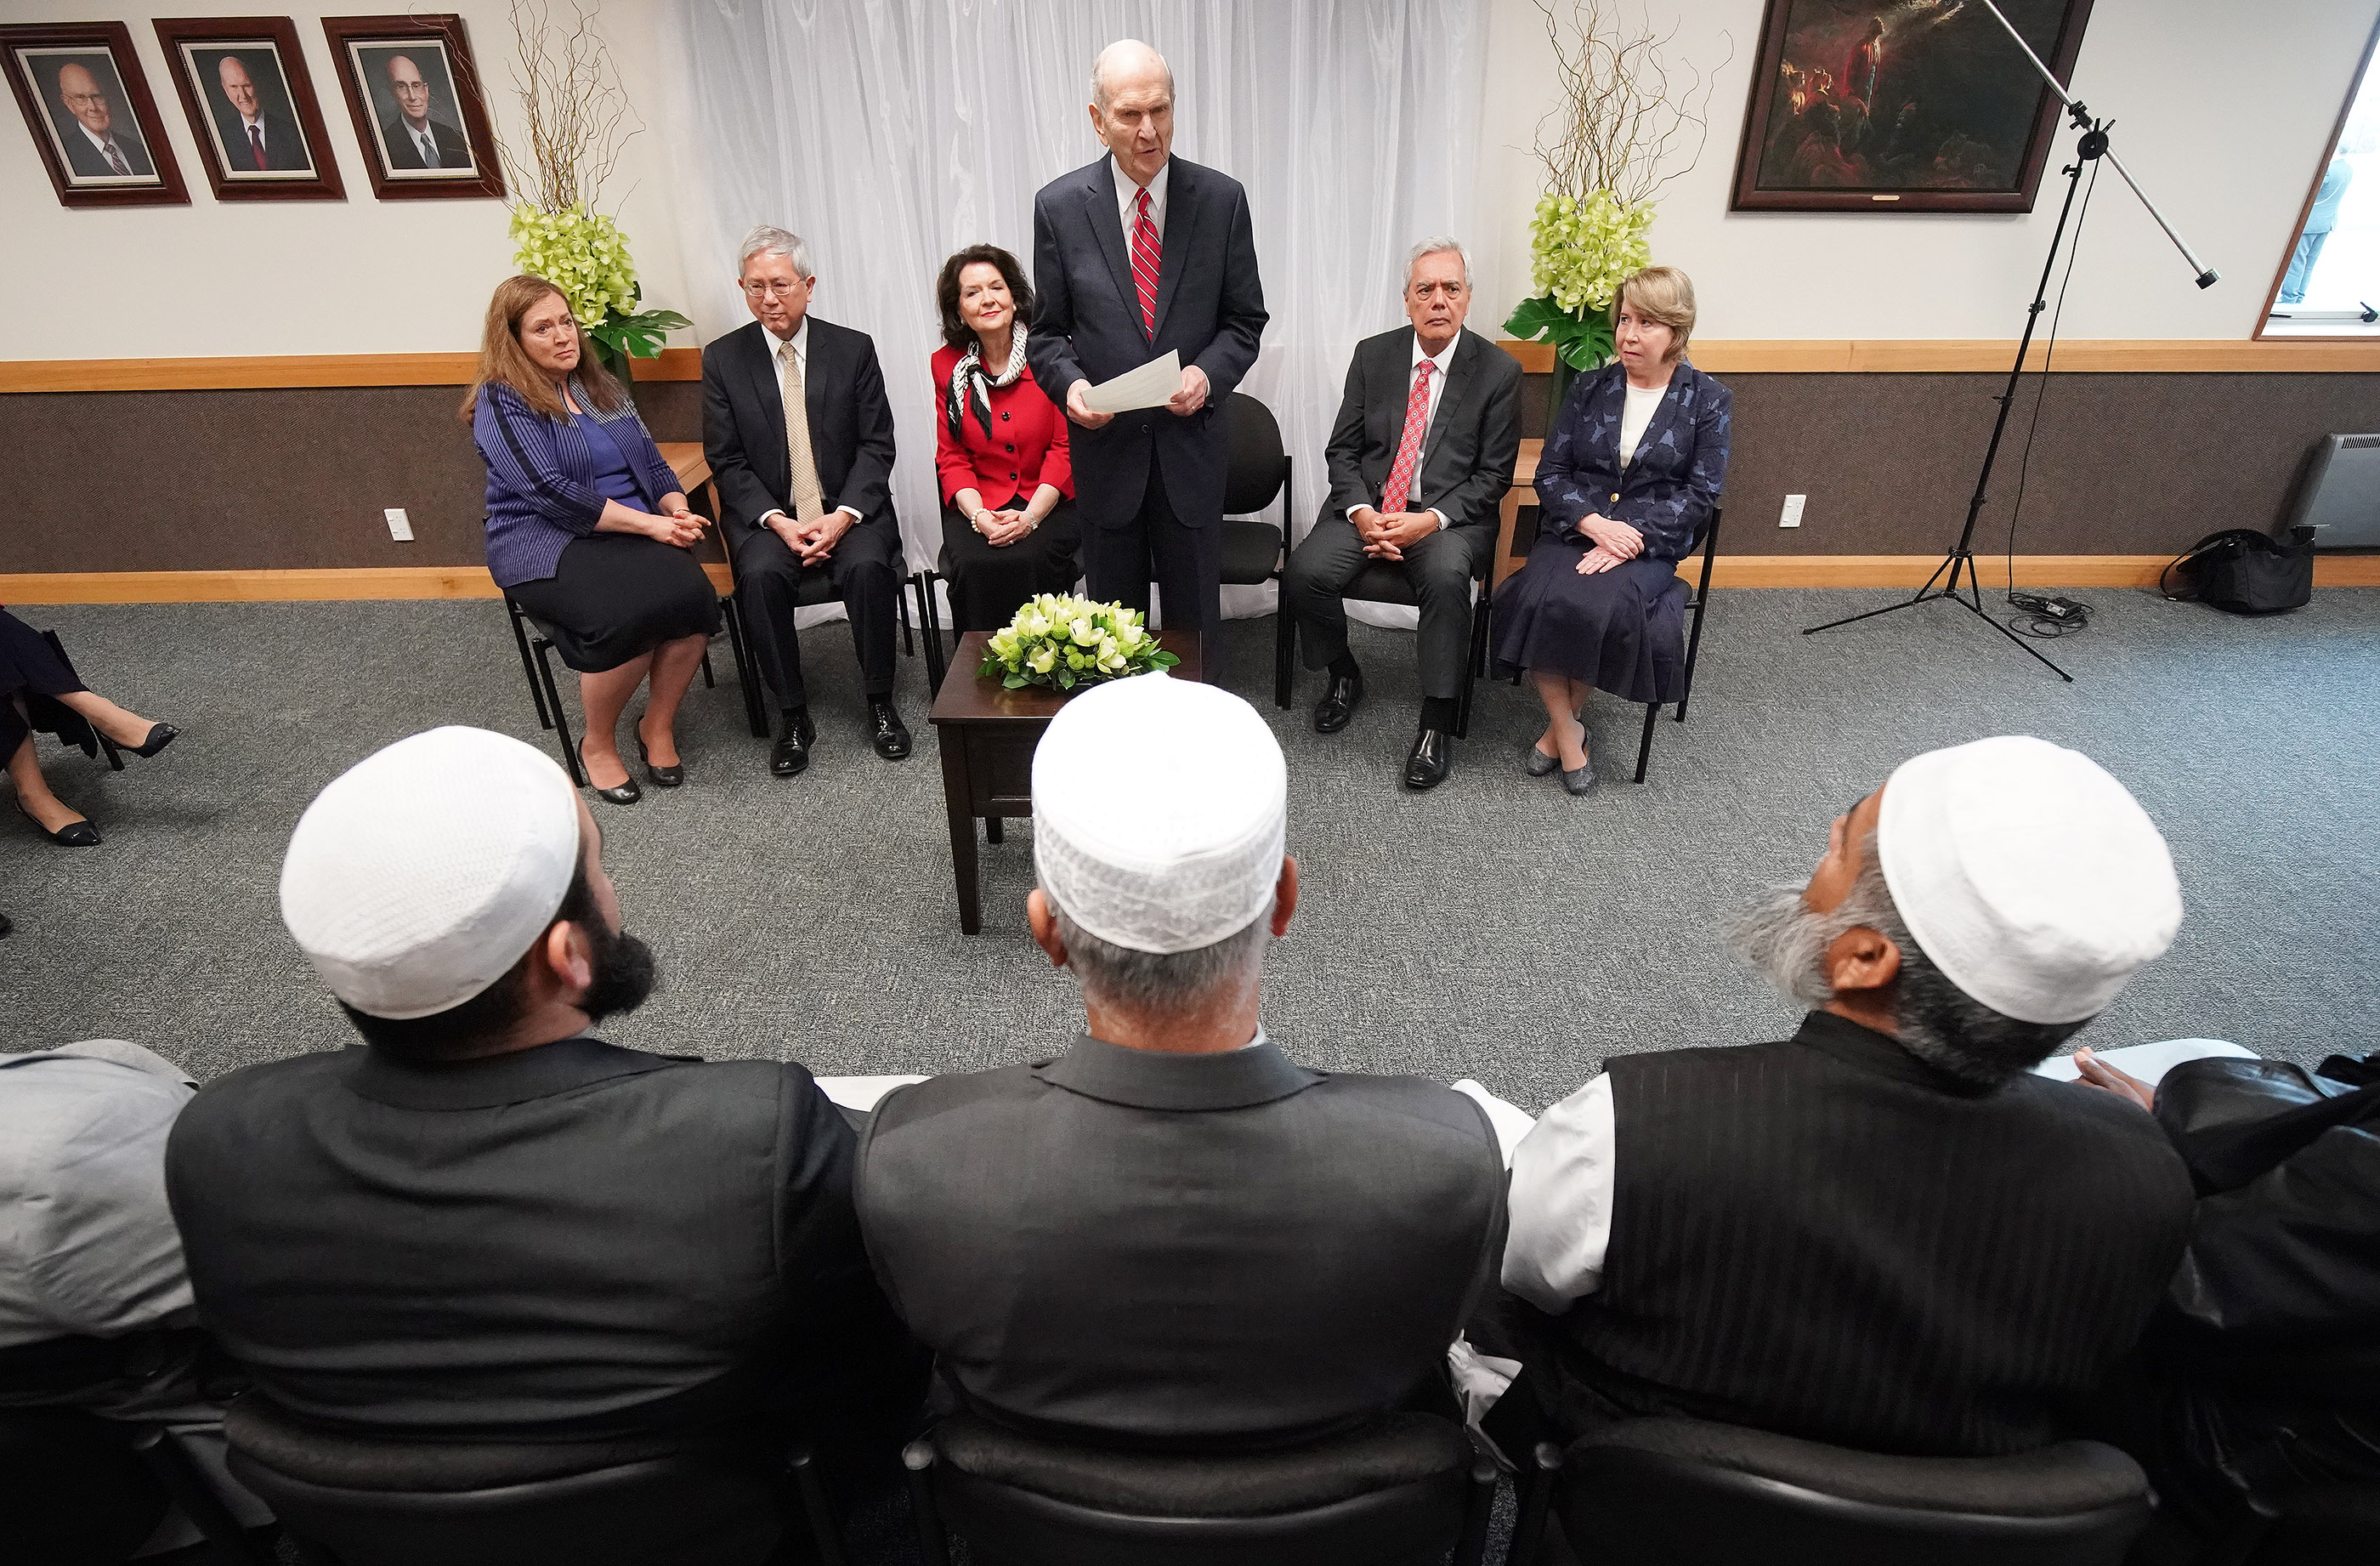 President Russell M. Nelson of The Church of Jesus Christ of Latter-day Saints meets with imams and a victim in Auckland, New Zealand on May 21, 2019 from two mosques that were recently attacked.